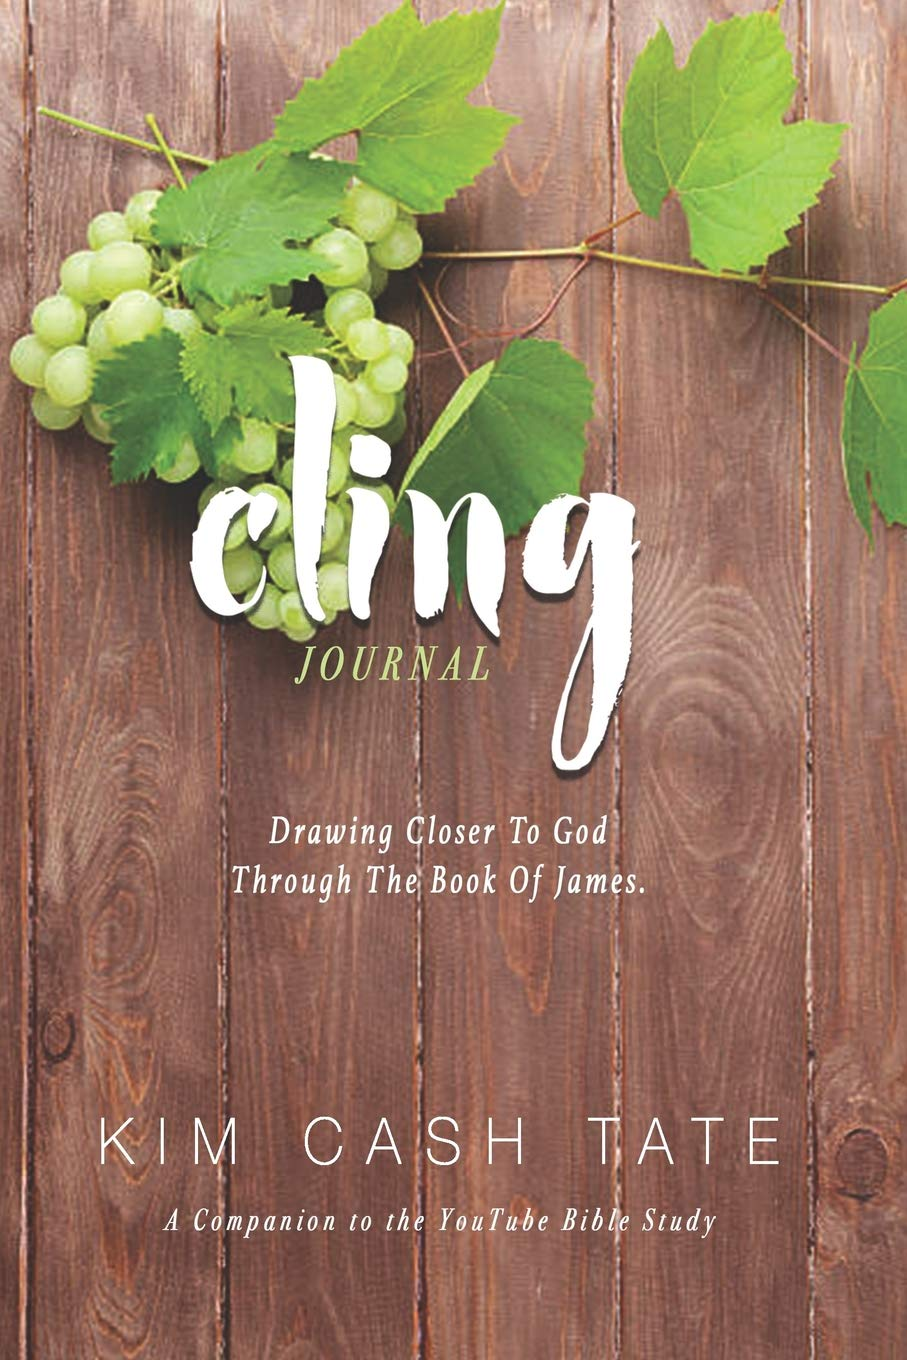 Cling Journal: Drawing Closer to God Through the Book of James by Kim Cash Tate_Cover.jpg